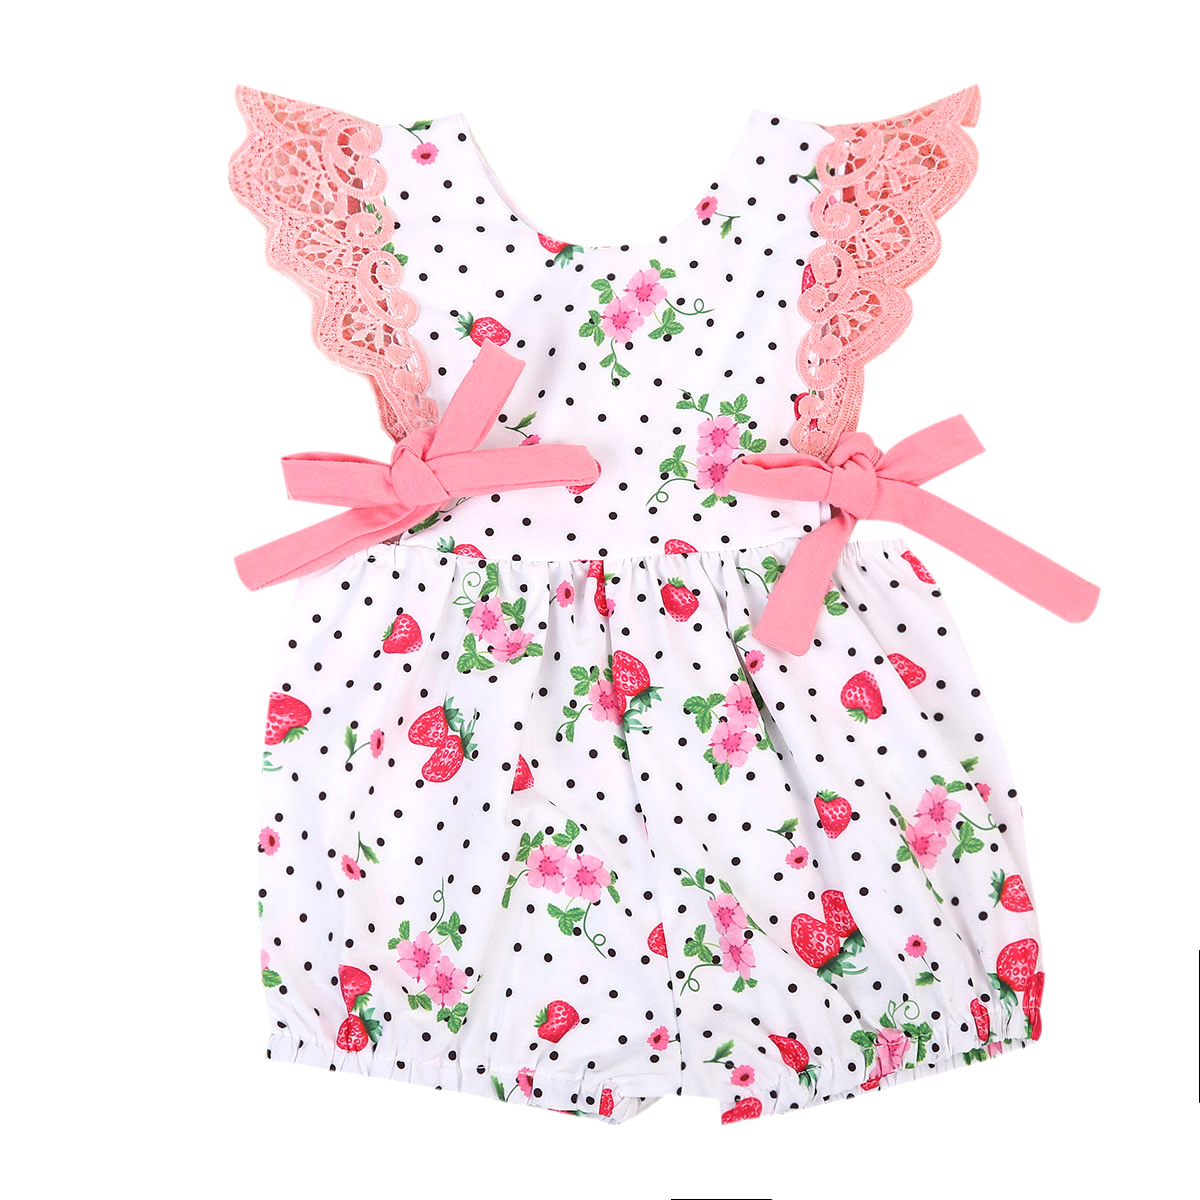 Strawberry Babies Cute Little Flowers Rompers Newborn Baby Girls Summer Romper Playsuit Clothes Sunsuit Floral Clothing 0-24M